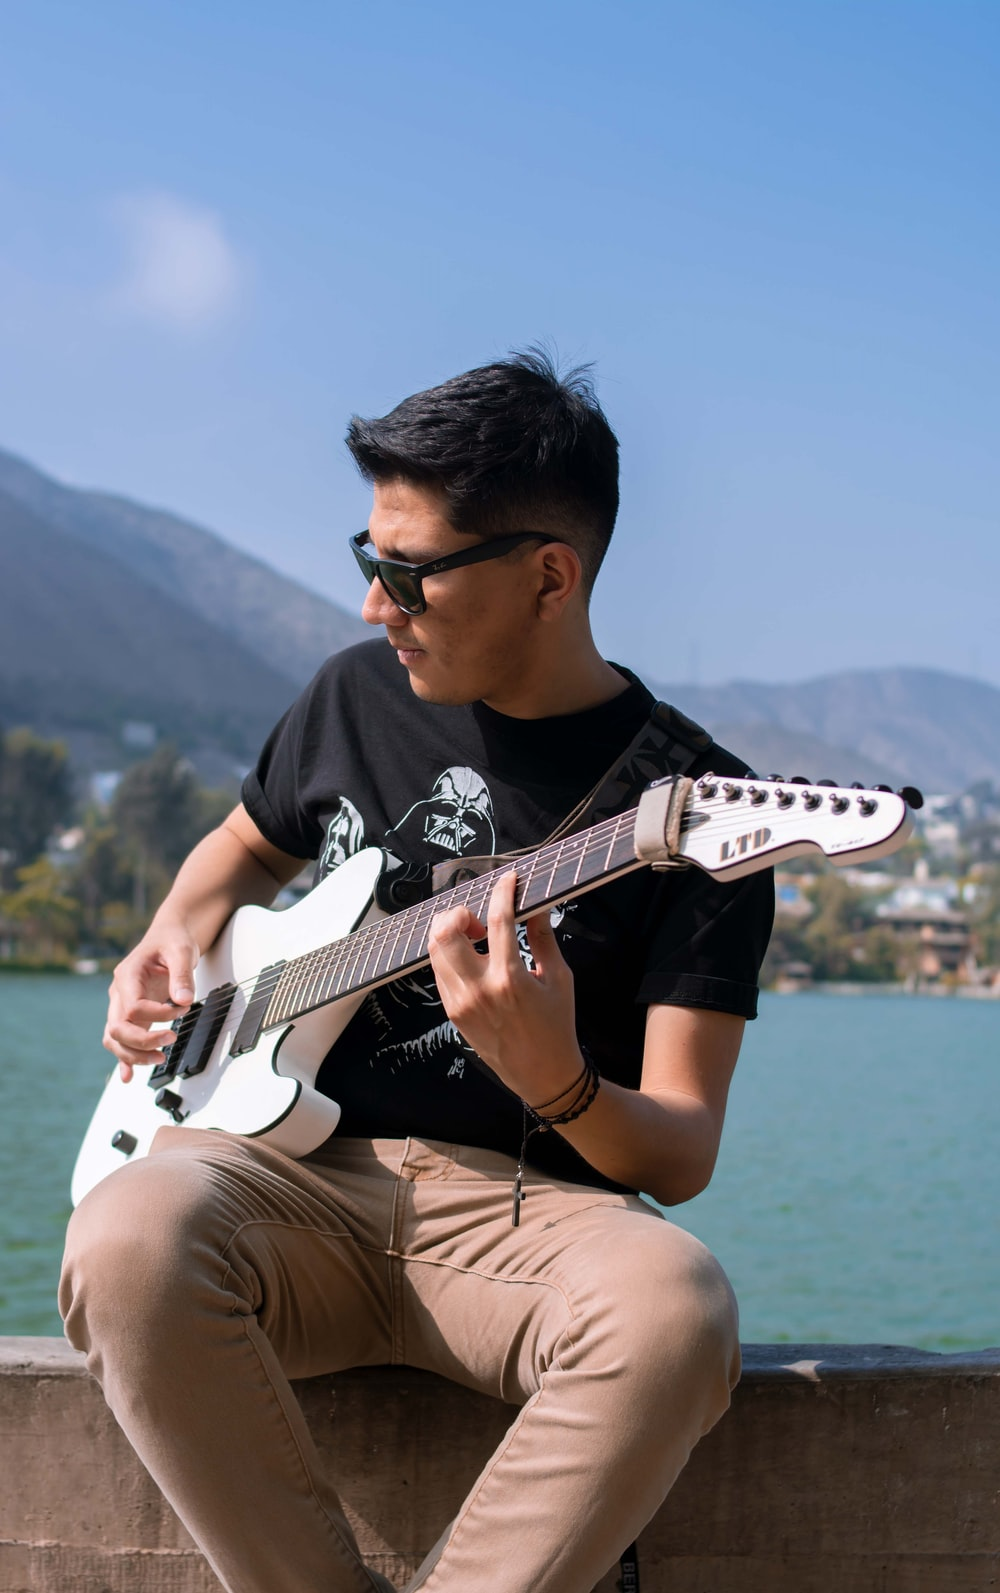 man in black crew neck t-shirt playing white electric guitar